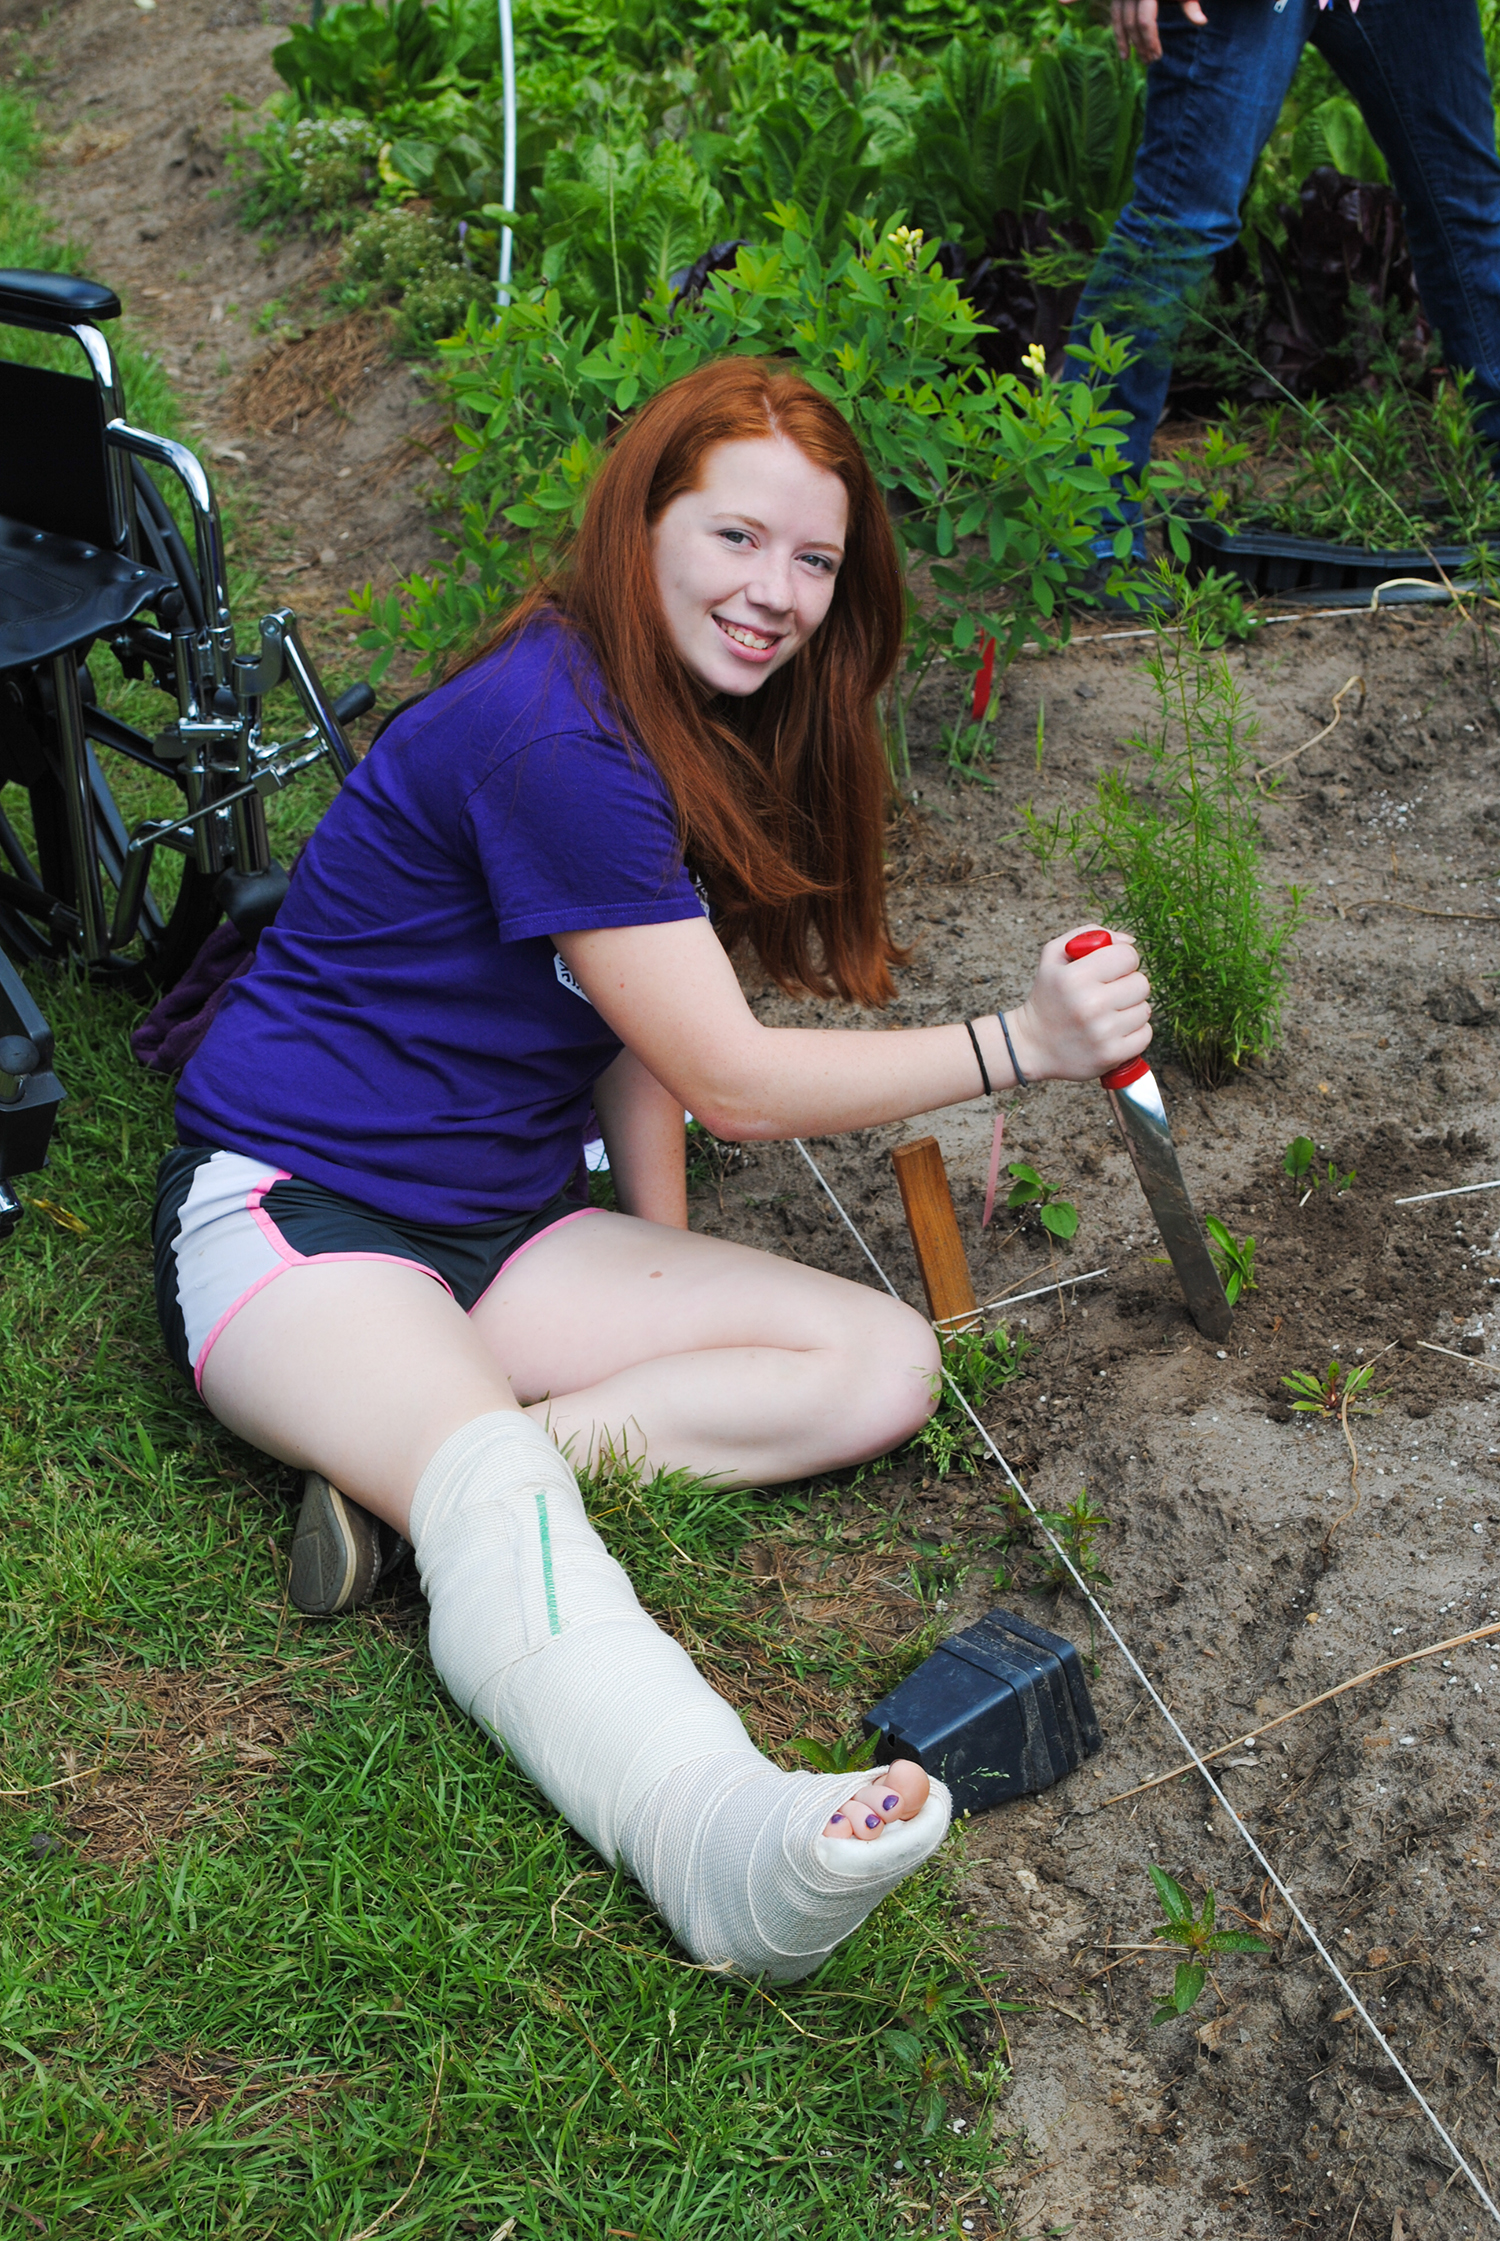 Even a broken leg doesn't stop students like Cierra from helping plant!